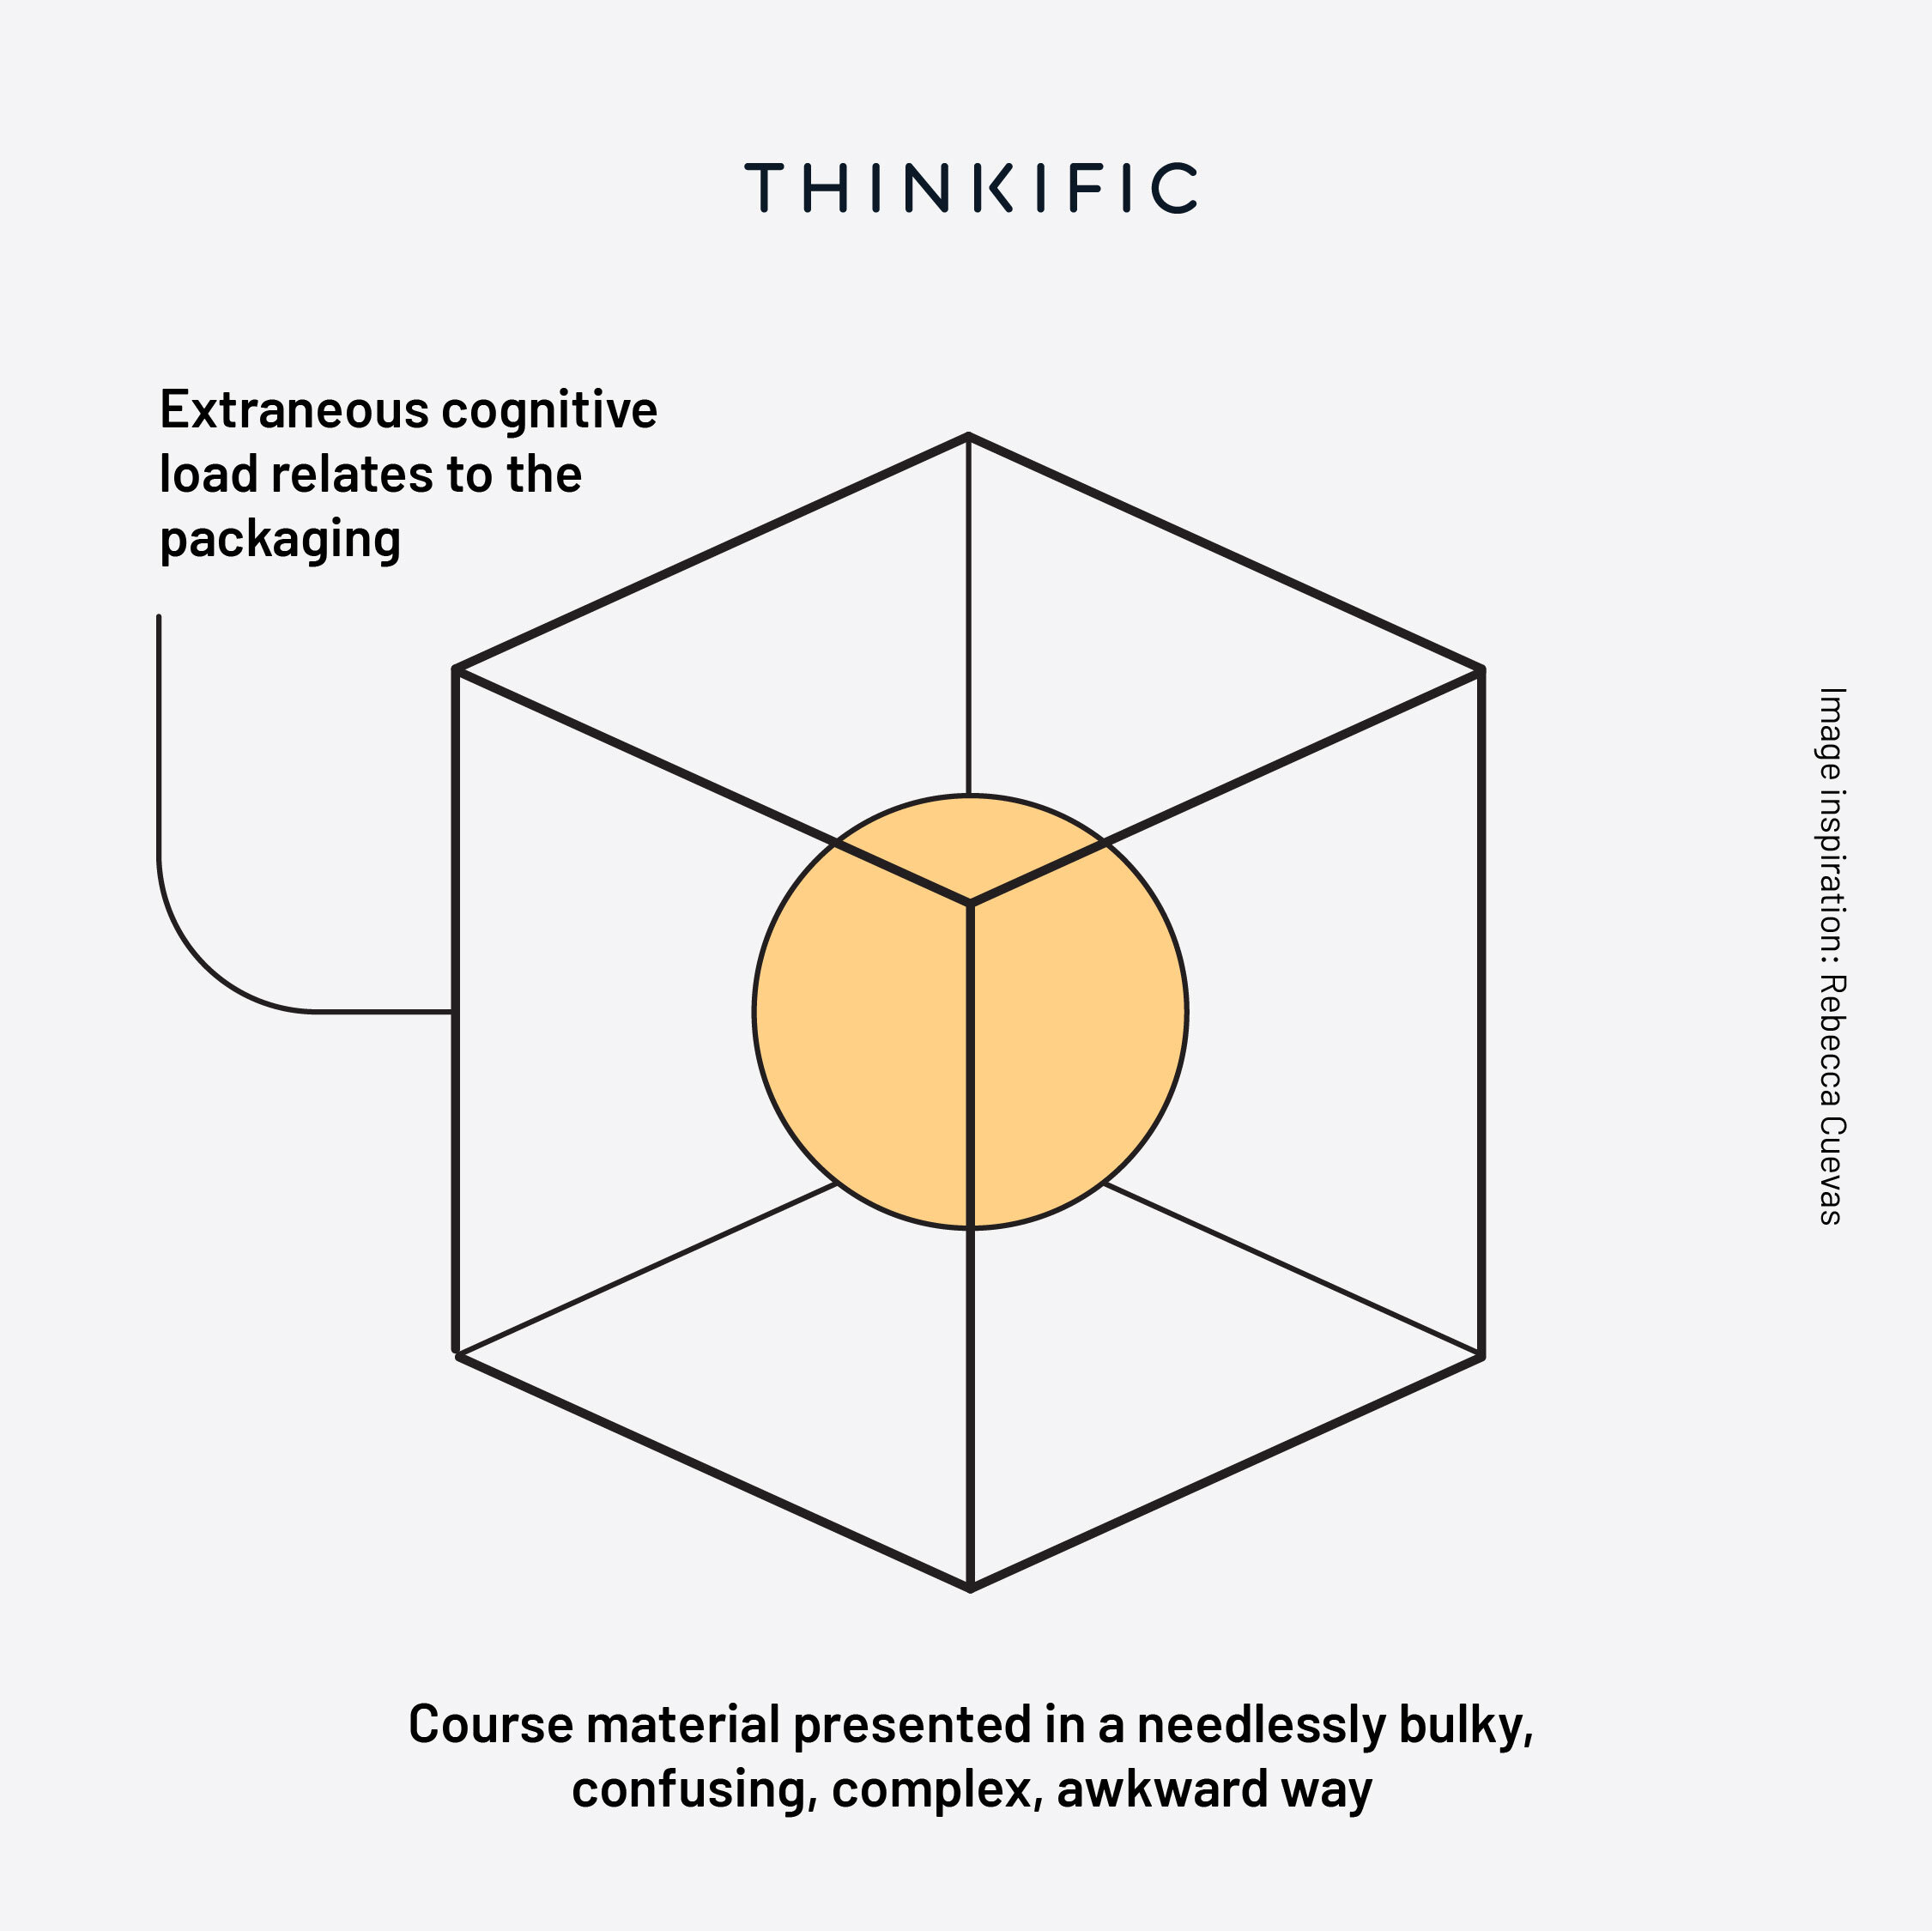 Extraneous Cognitive load infographic